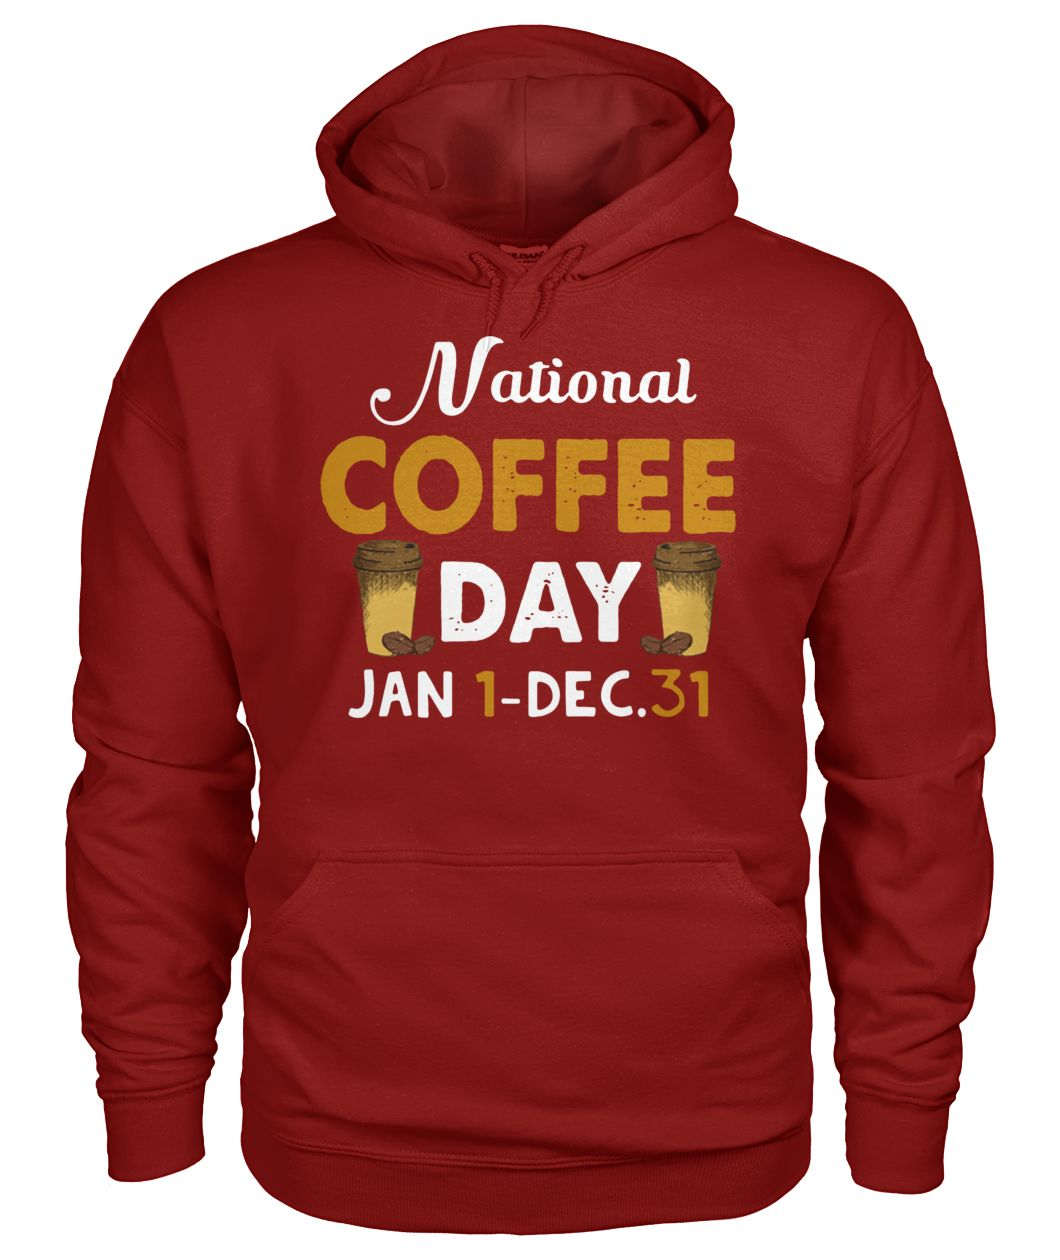 National coffee day Jan 1 - Dec 31 gildan hoodie